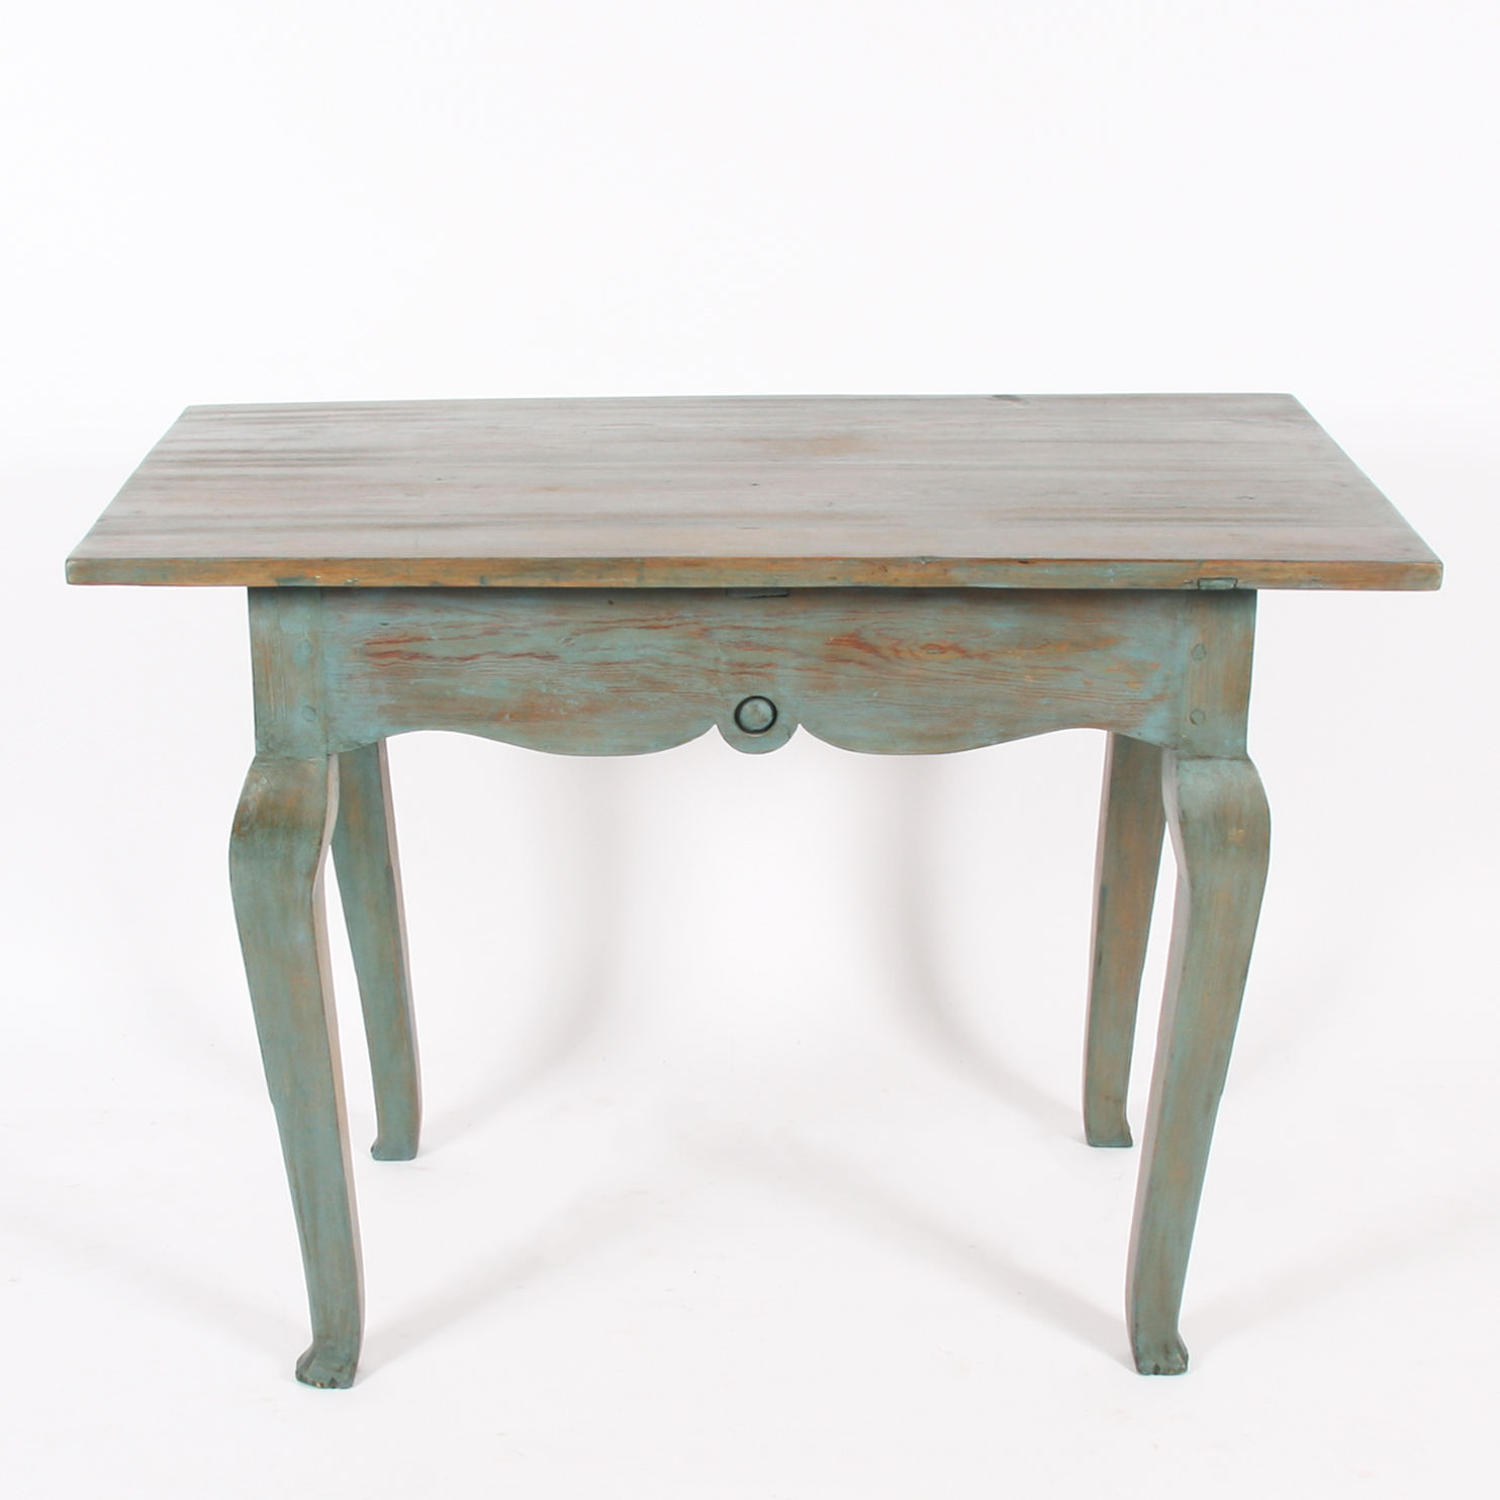 Painted C18th Swedish Table